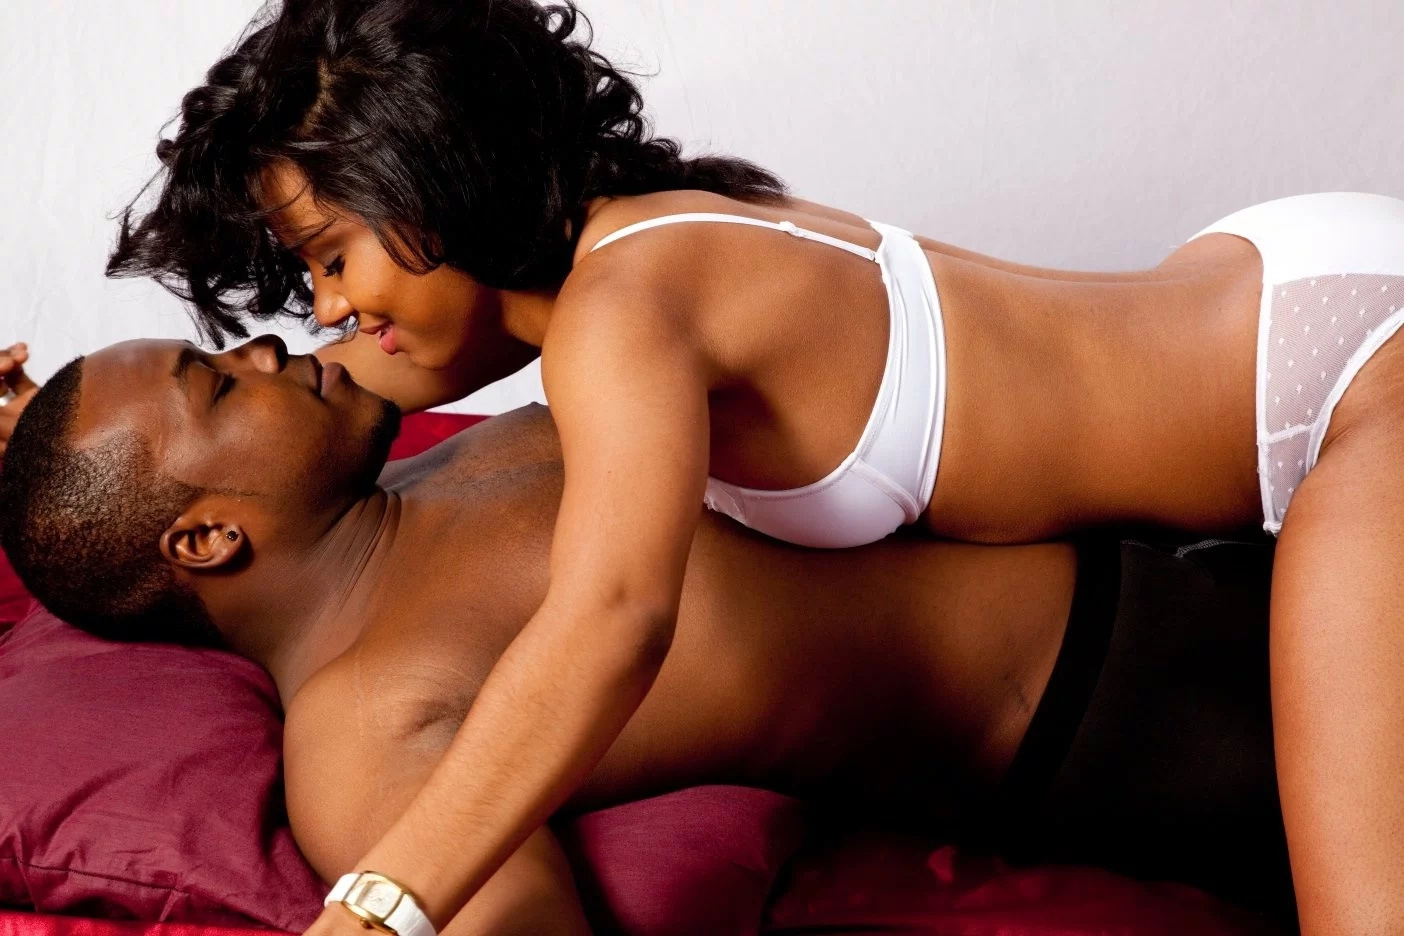 5 things men ignore when using fingers in their women